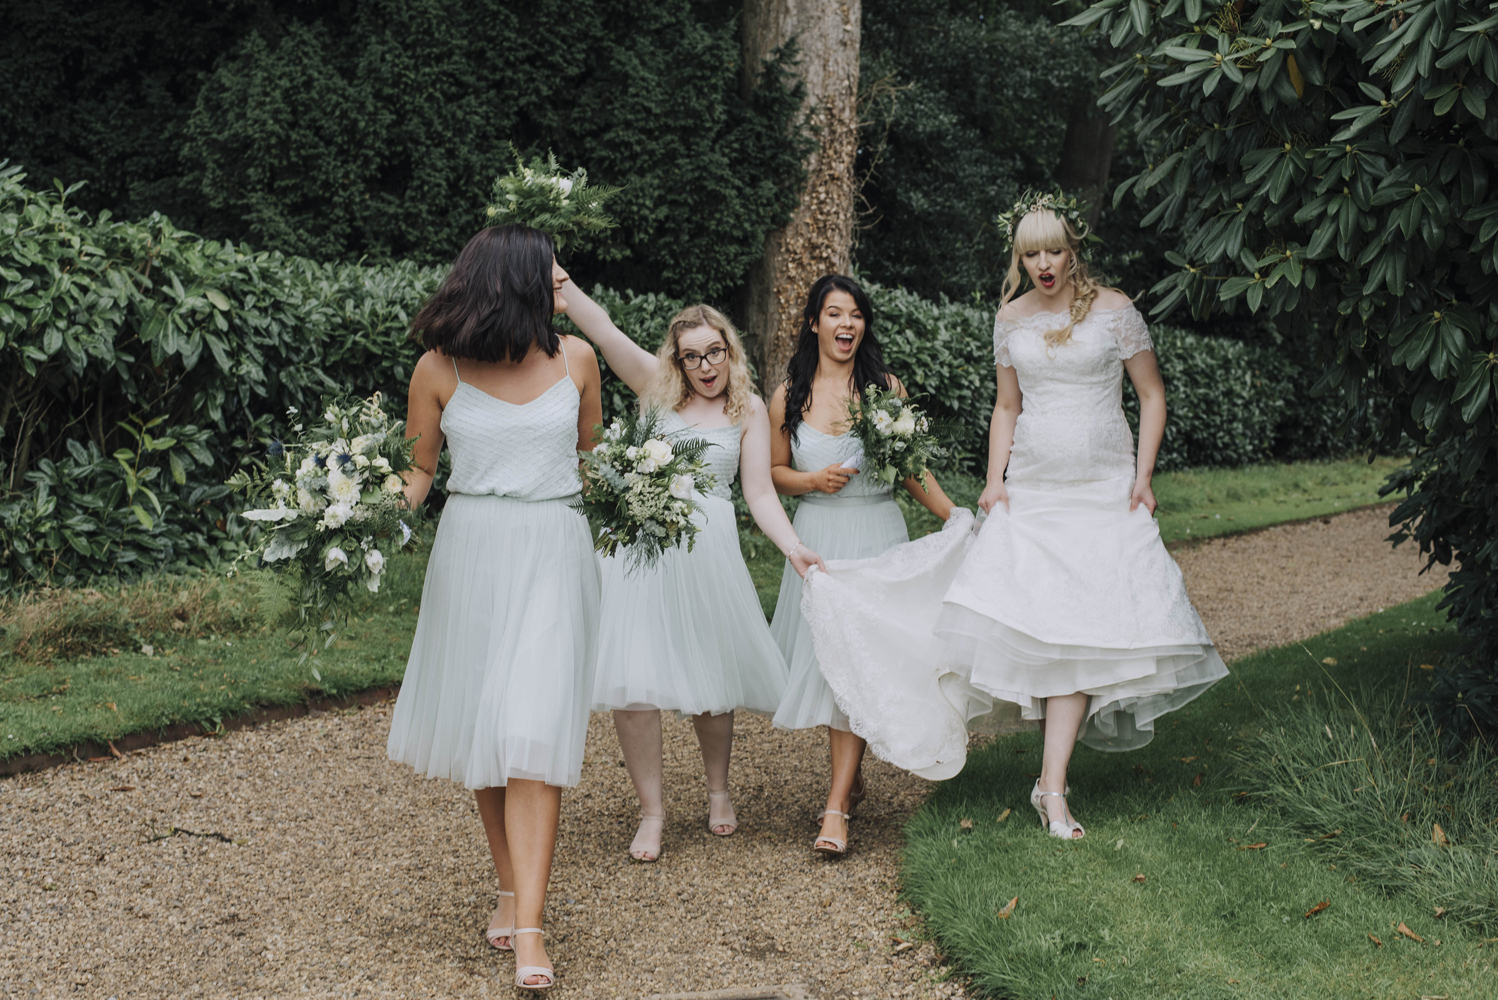 BEST_OF_2017_NORFOLK_WEDDING_PHOTOGRAPHER_332